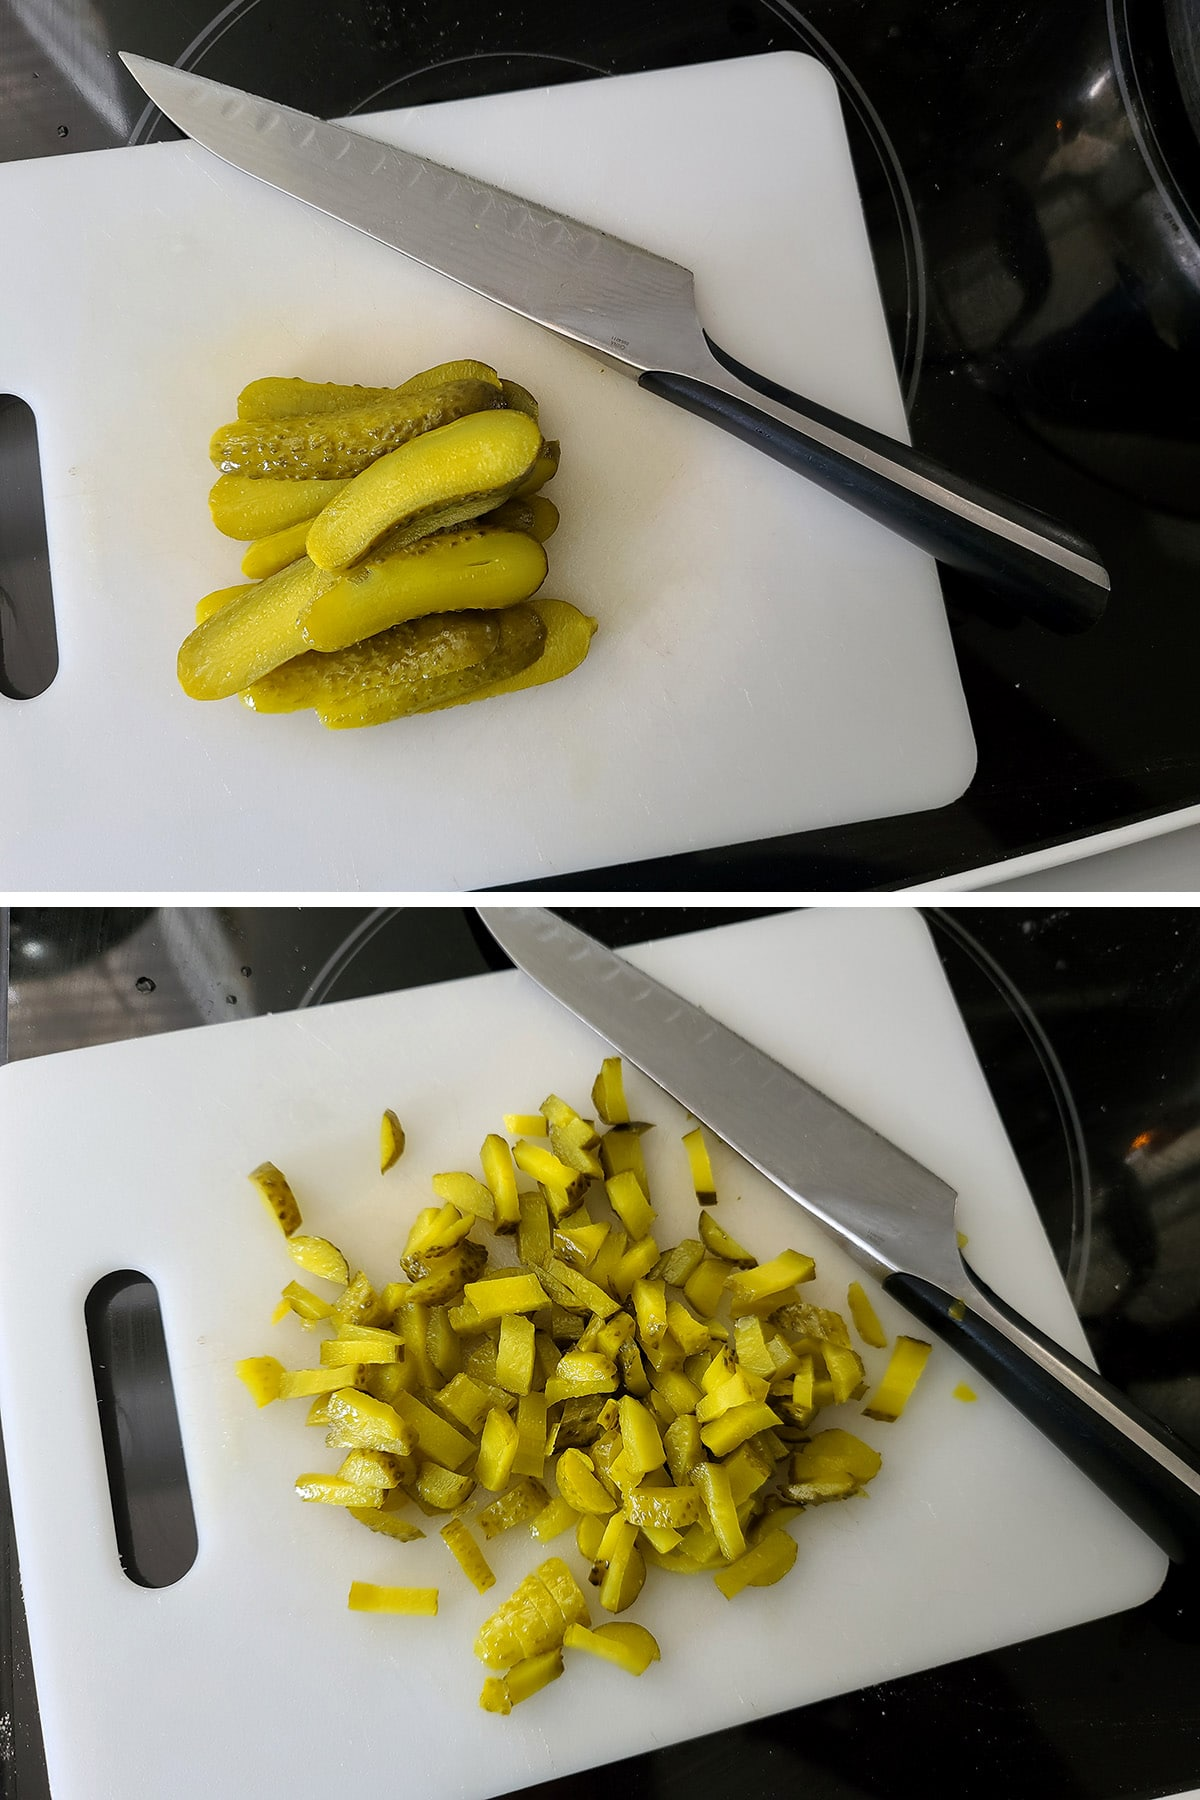 A two part compilation image showing pickles on a cutting board. In the first, they're cut into lengthwise strips, in the second they're sliced crosswise.